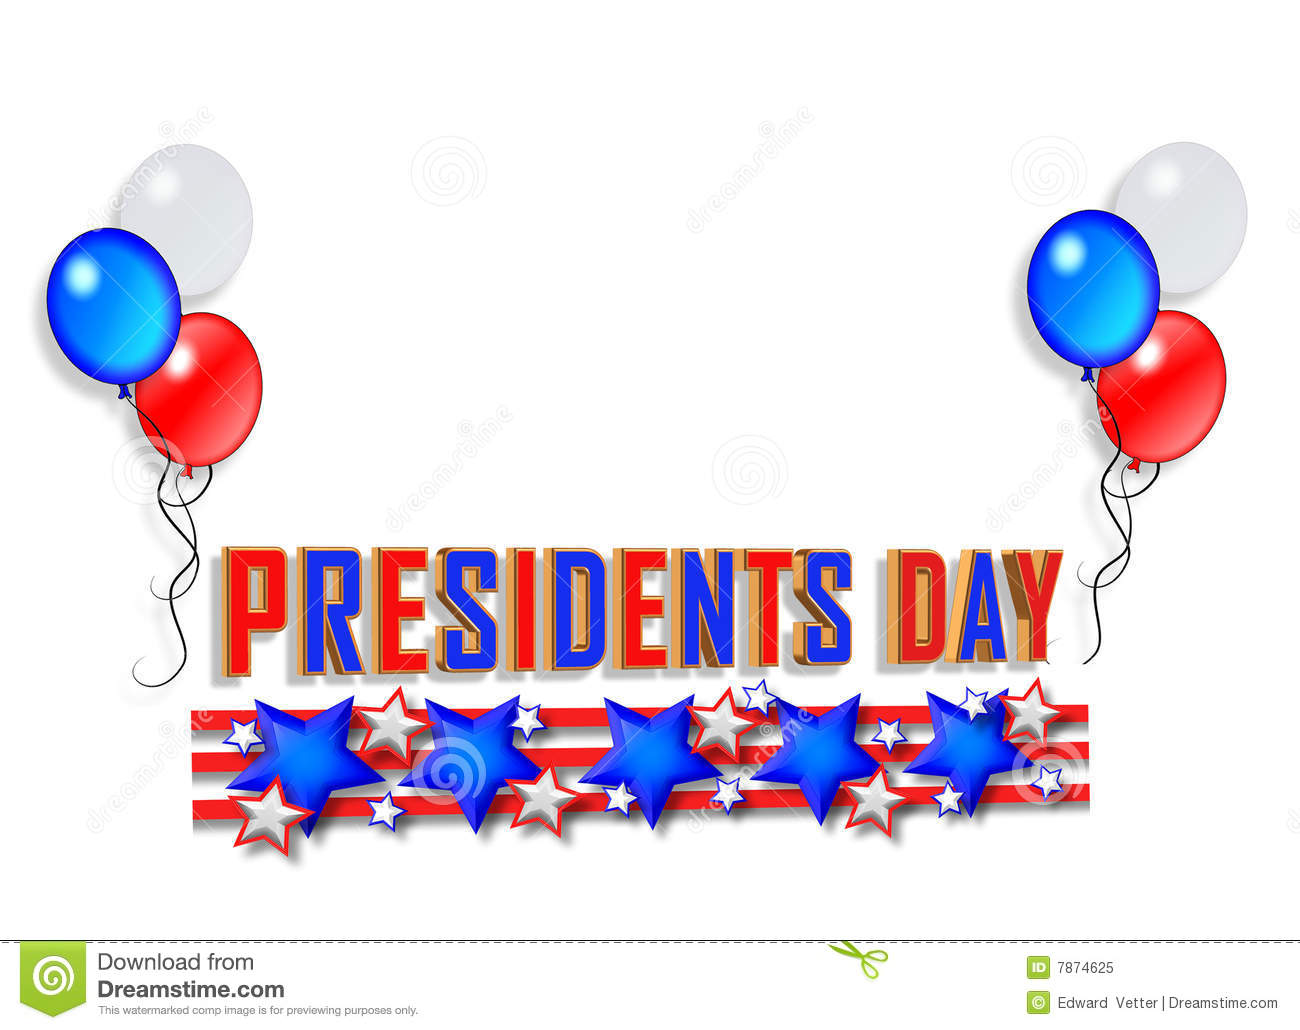 Presidents day Background 2.